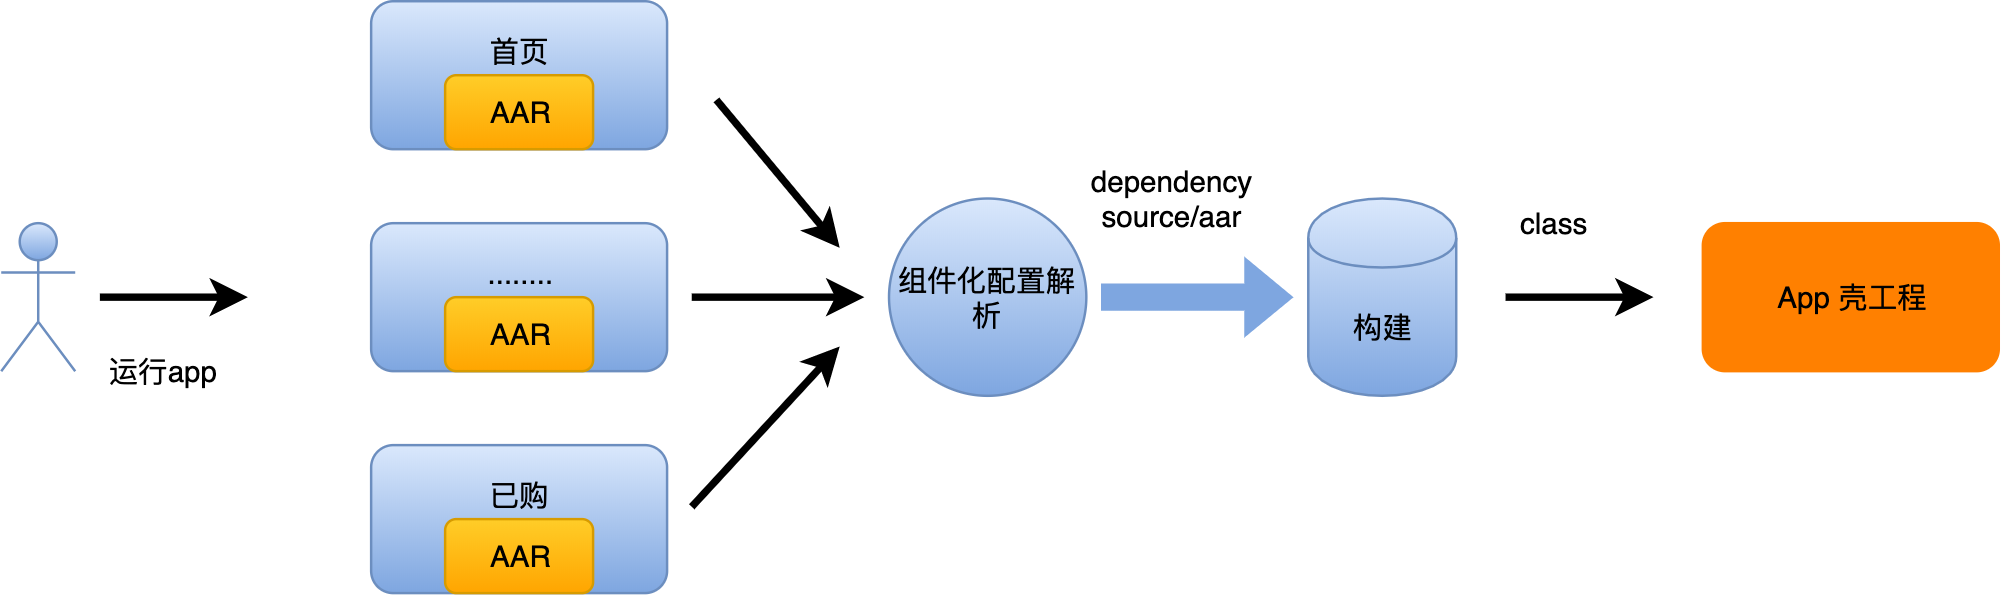 Untitled Diagram (36).png